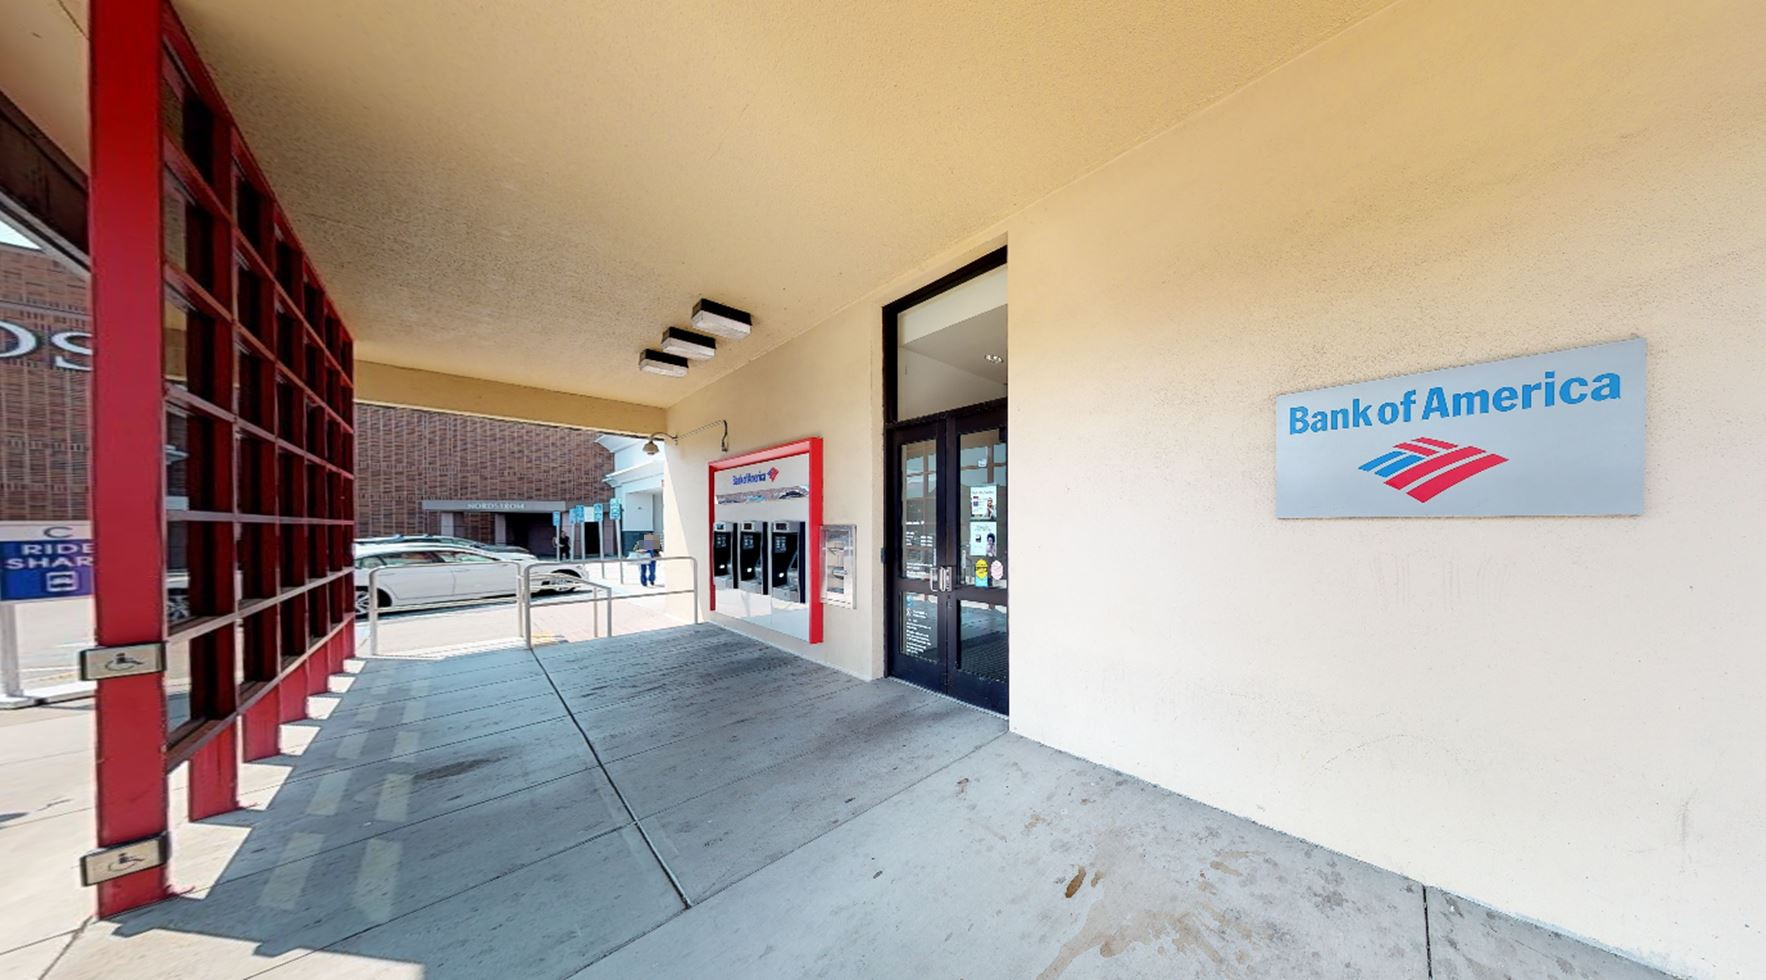 Bank of America financial center with walk-up ATM | 245 Winston Dr, San Francisco, CA 94132